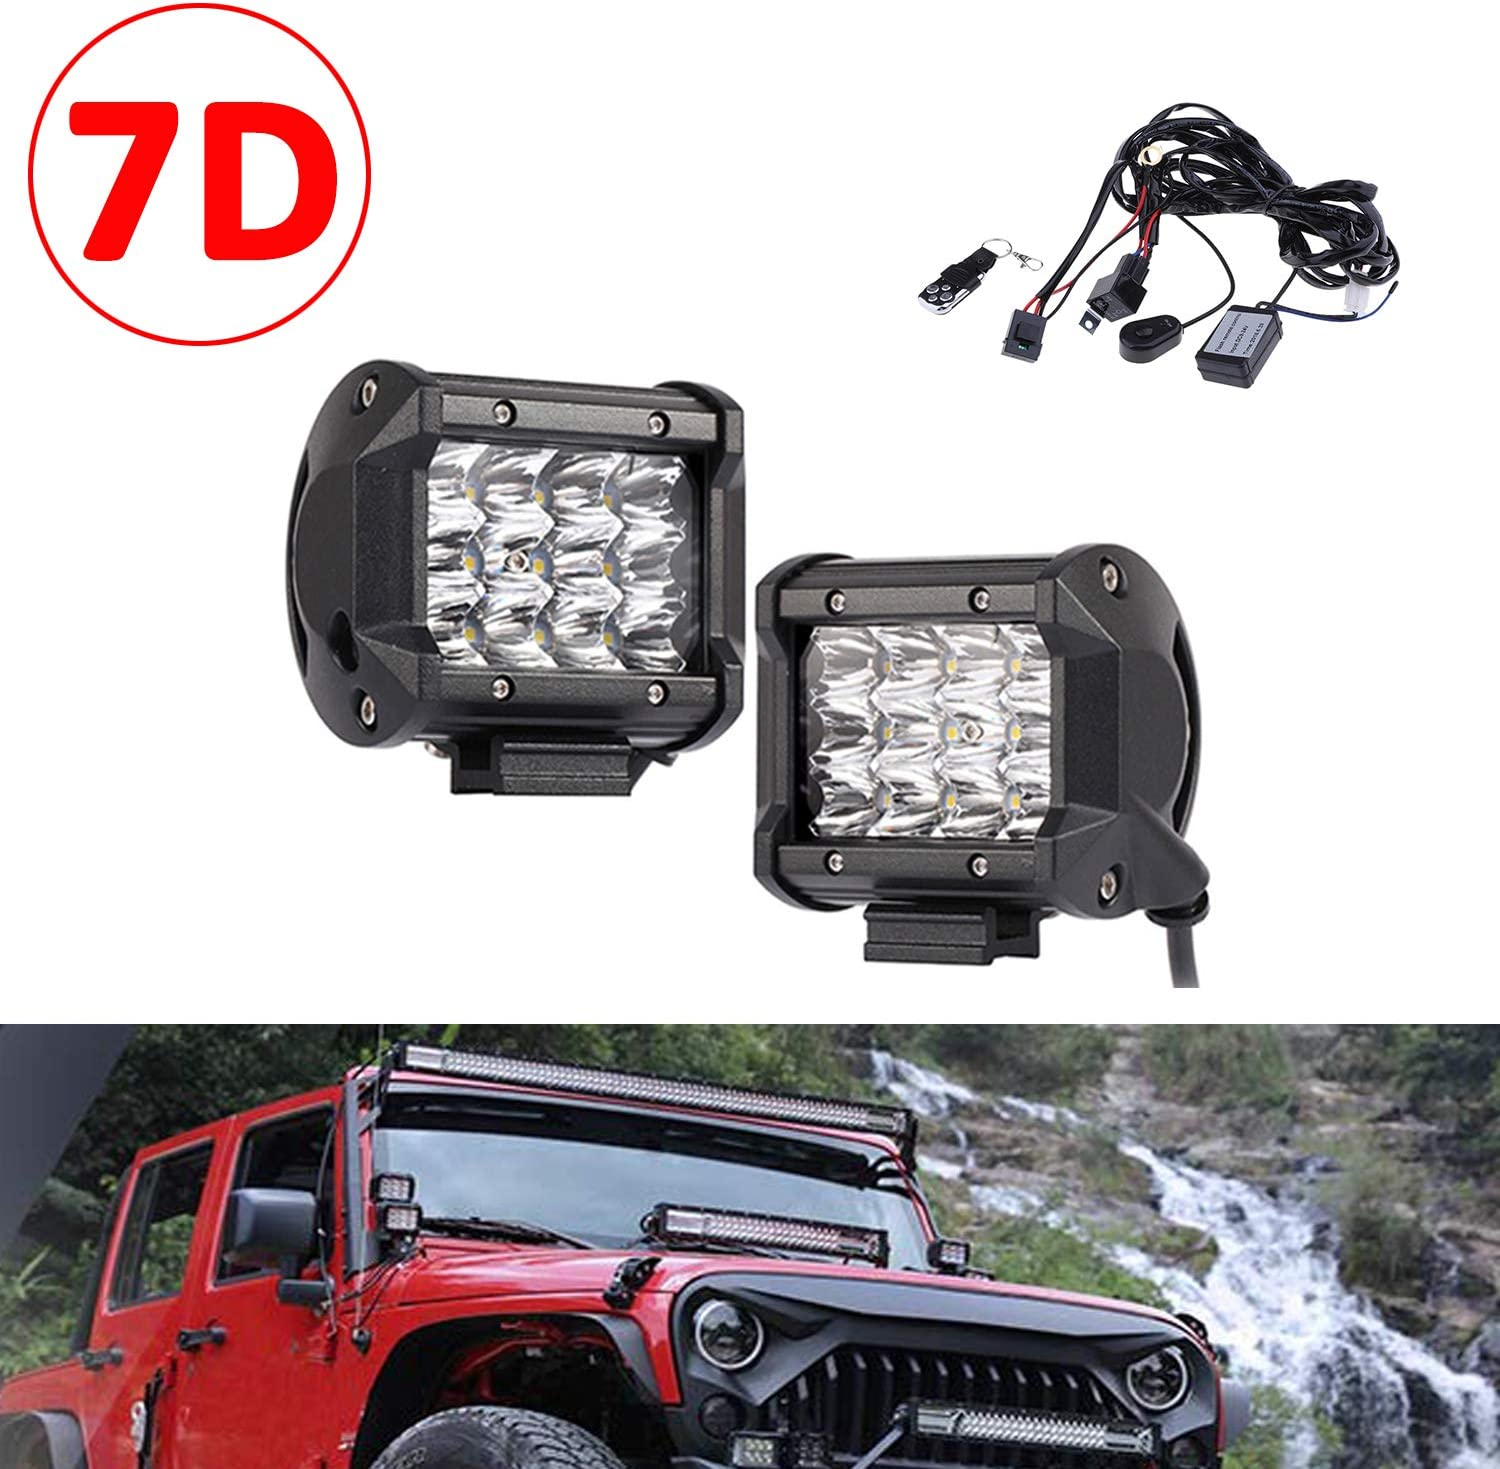 4inch 36W Triple Row Spot Driving Light Fog Lamp with Wiring Harness Kit for Offroad Boat Truck 4WD SUV Boat ATV 4x4 Pickup SKYWORLD 7D LED Work Light Bar